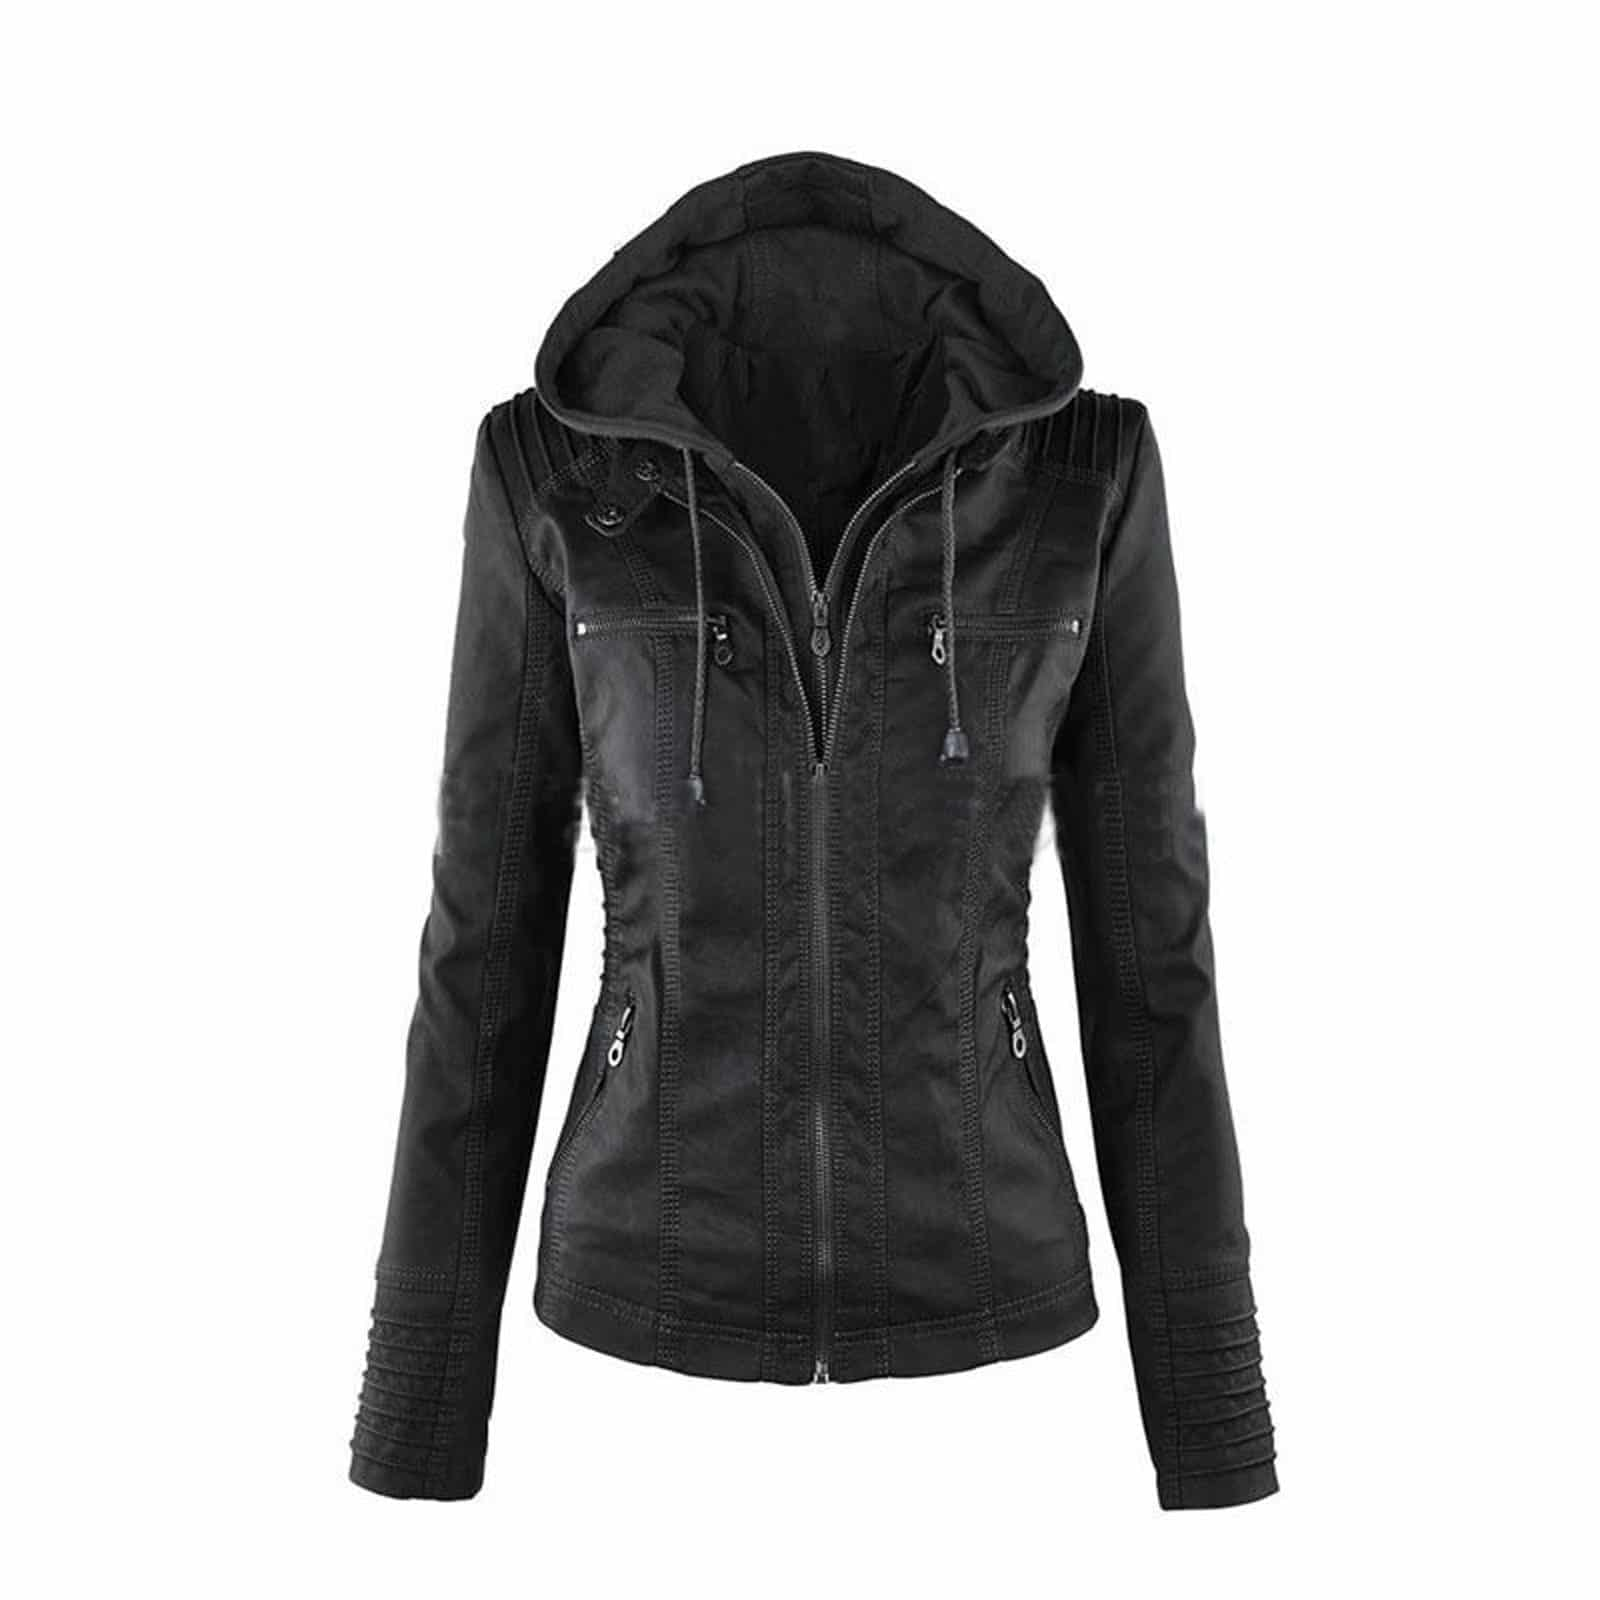 e6a3208f3 Hooded Leather Jacket for Women